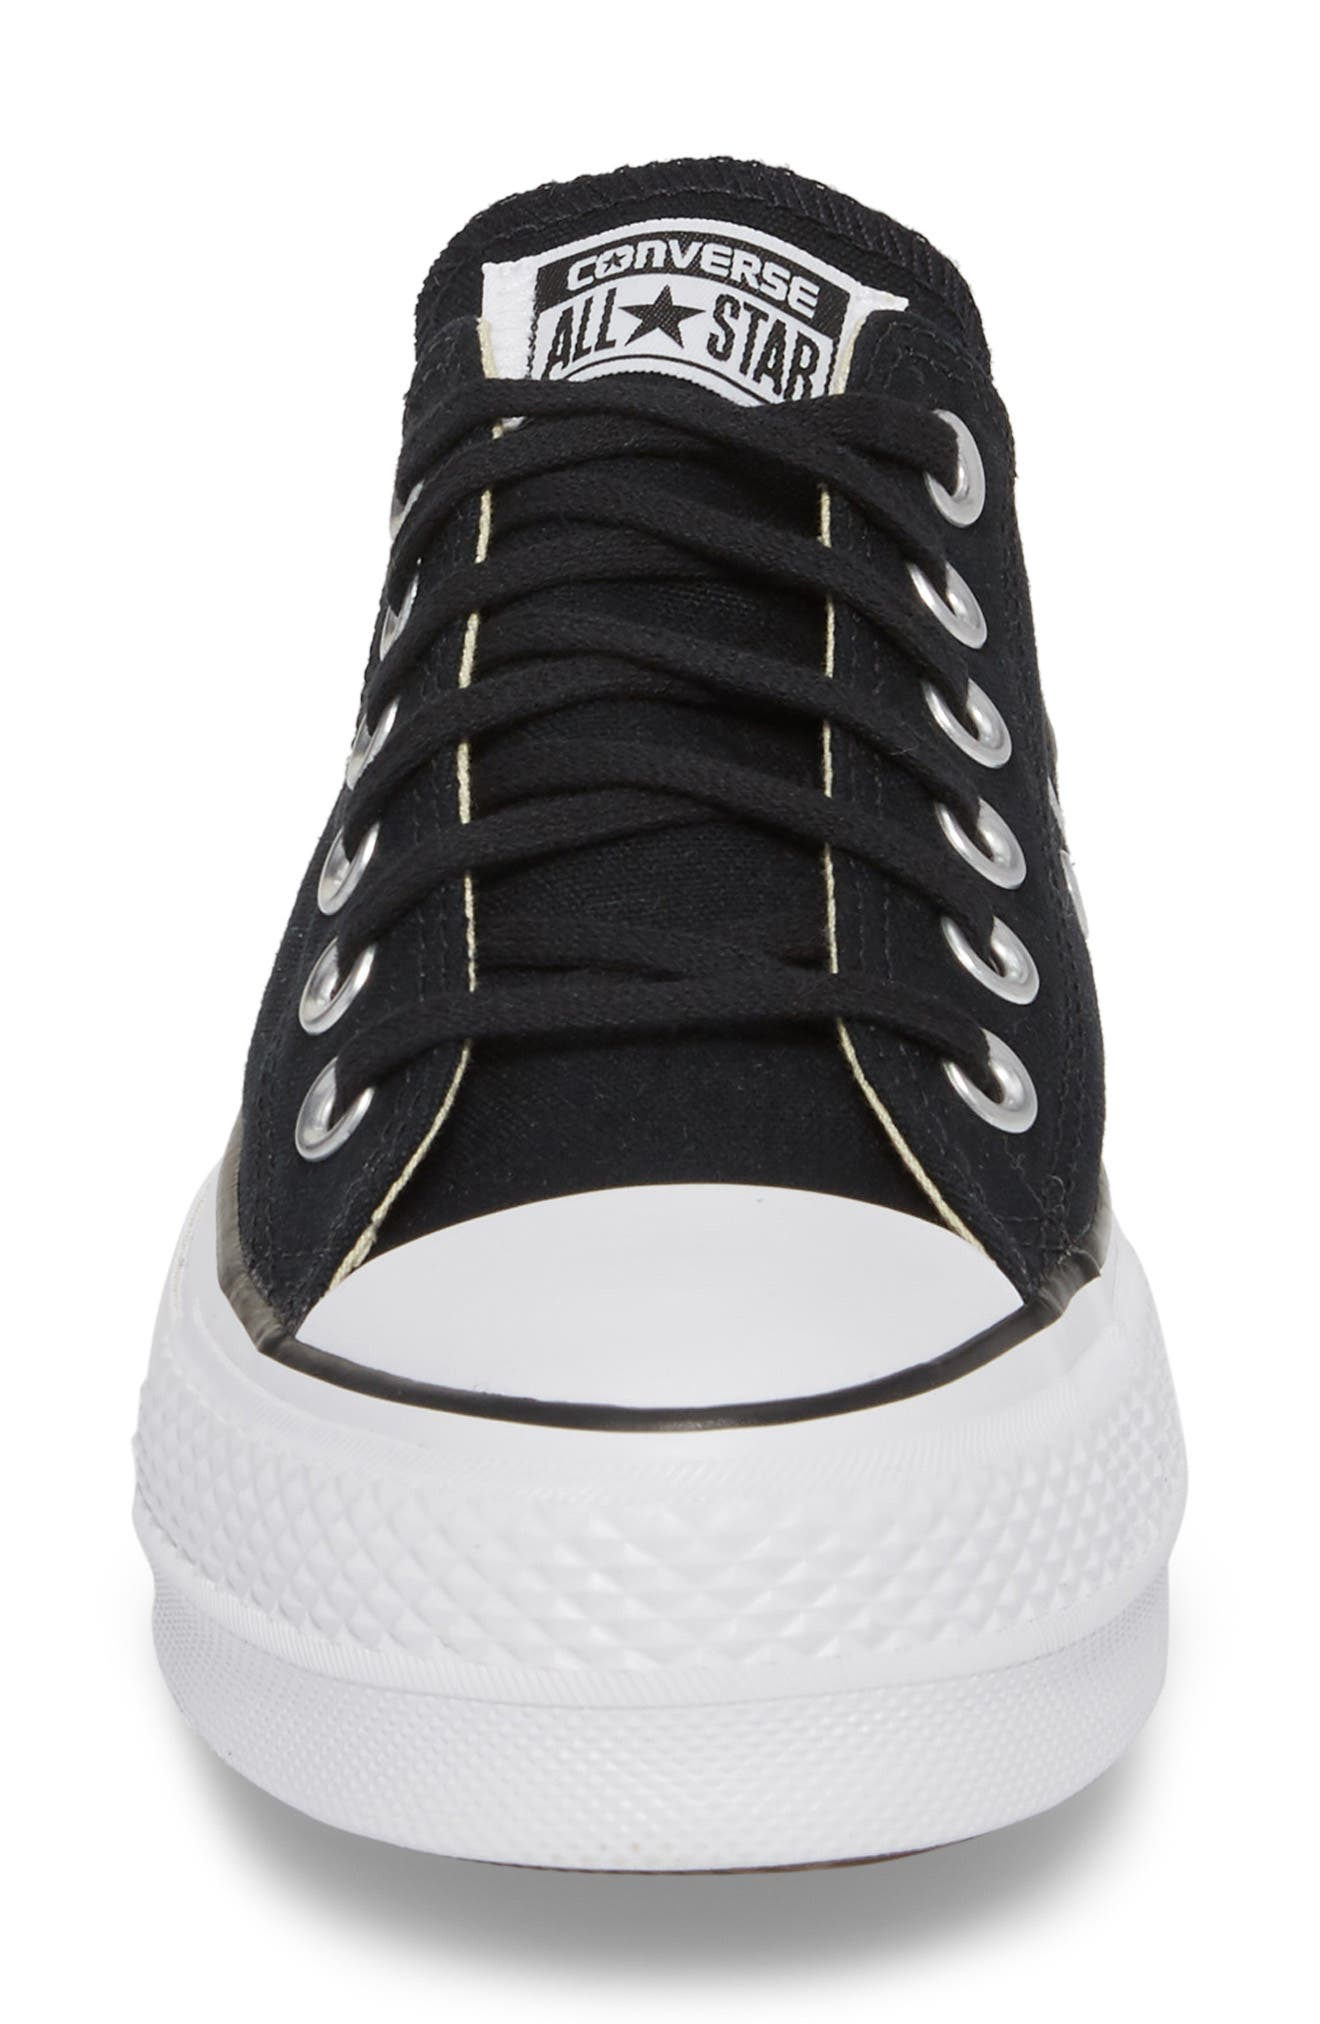 CONVERSE, Chuck Taylor<sup>®</sup> All Star<sup>®</sup> Platform Sneaker, Alternate thumbnail 4, color, BLACK/ WHITE/ WHITE